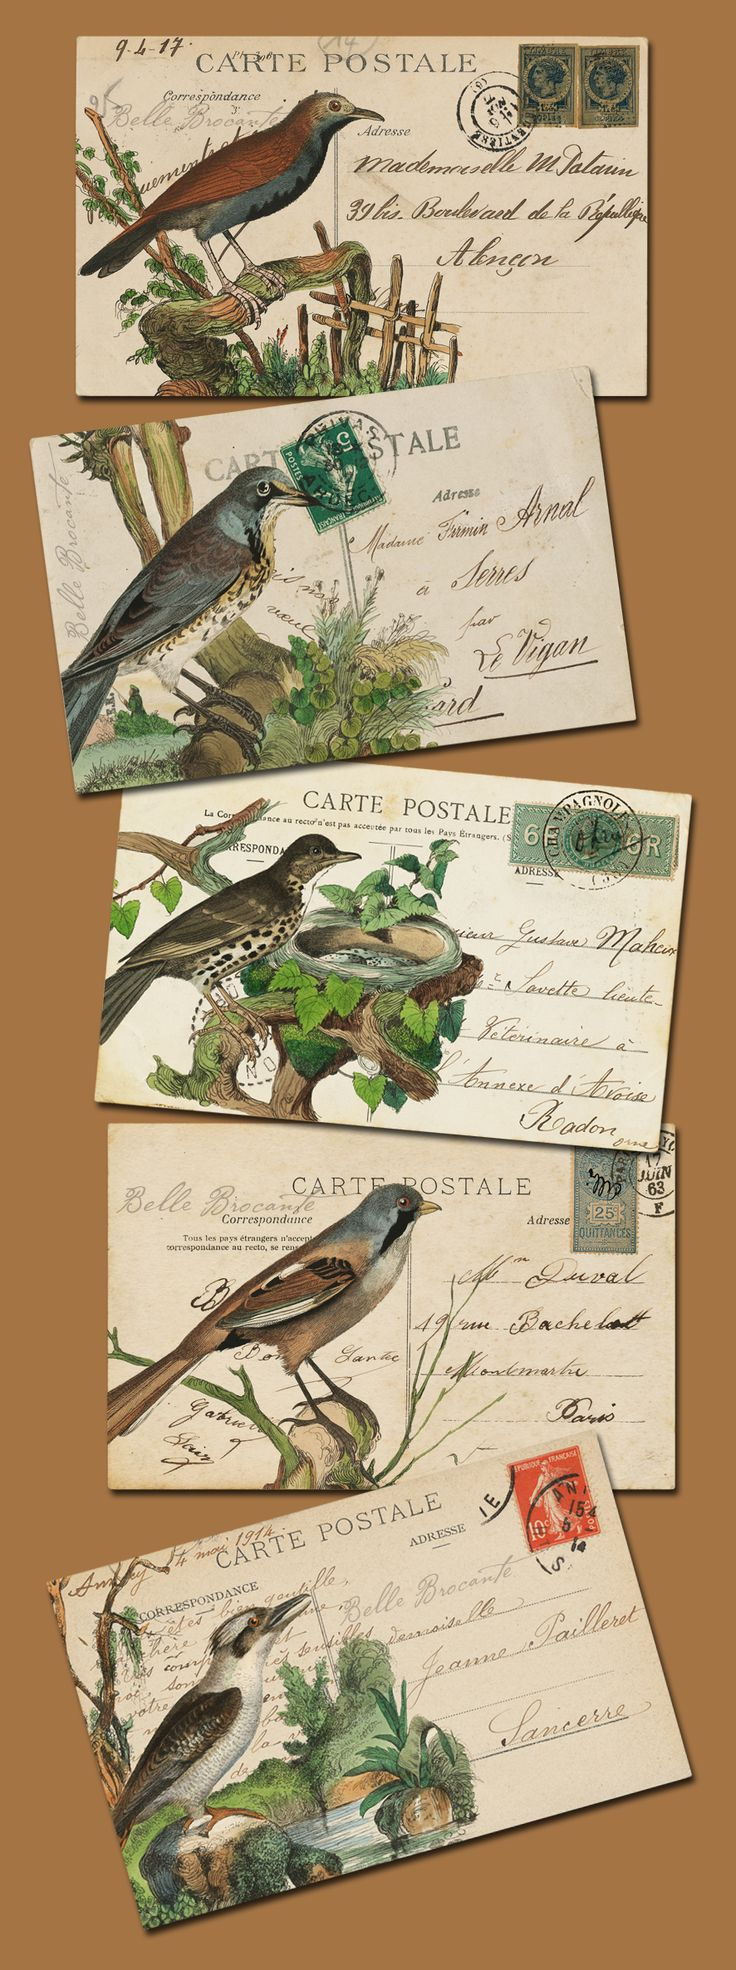 ≗ Feathered Nest of Hope ≗ bird feather & nest art jewelry & decor - Bird Vintage Postcards